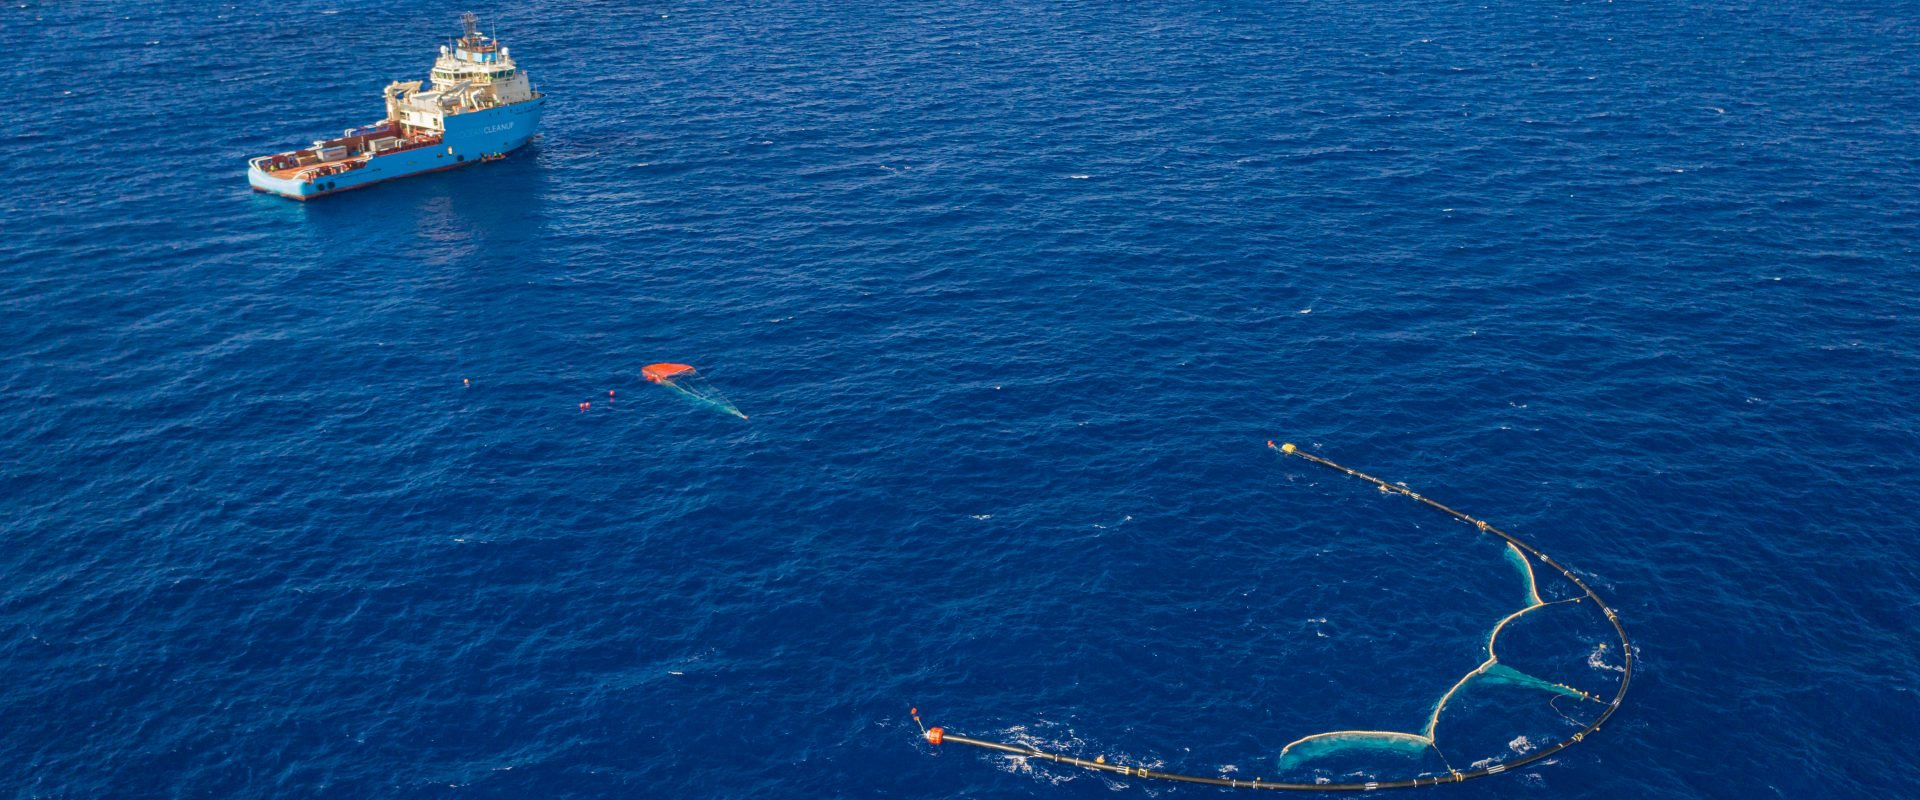 U-shaped floating barrier collects plastic waste in Pacific ocean